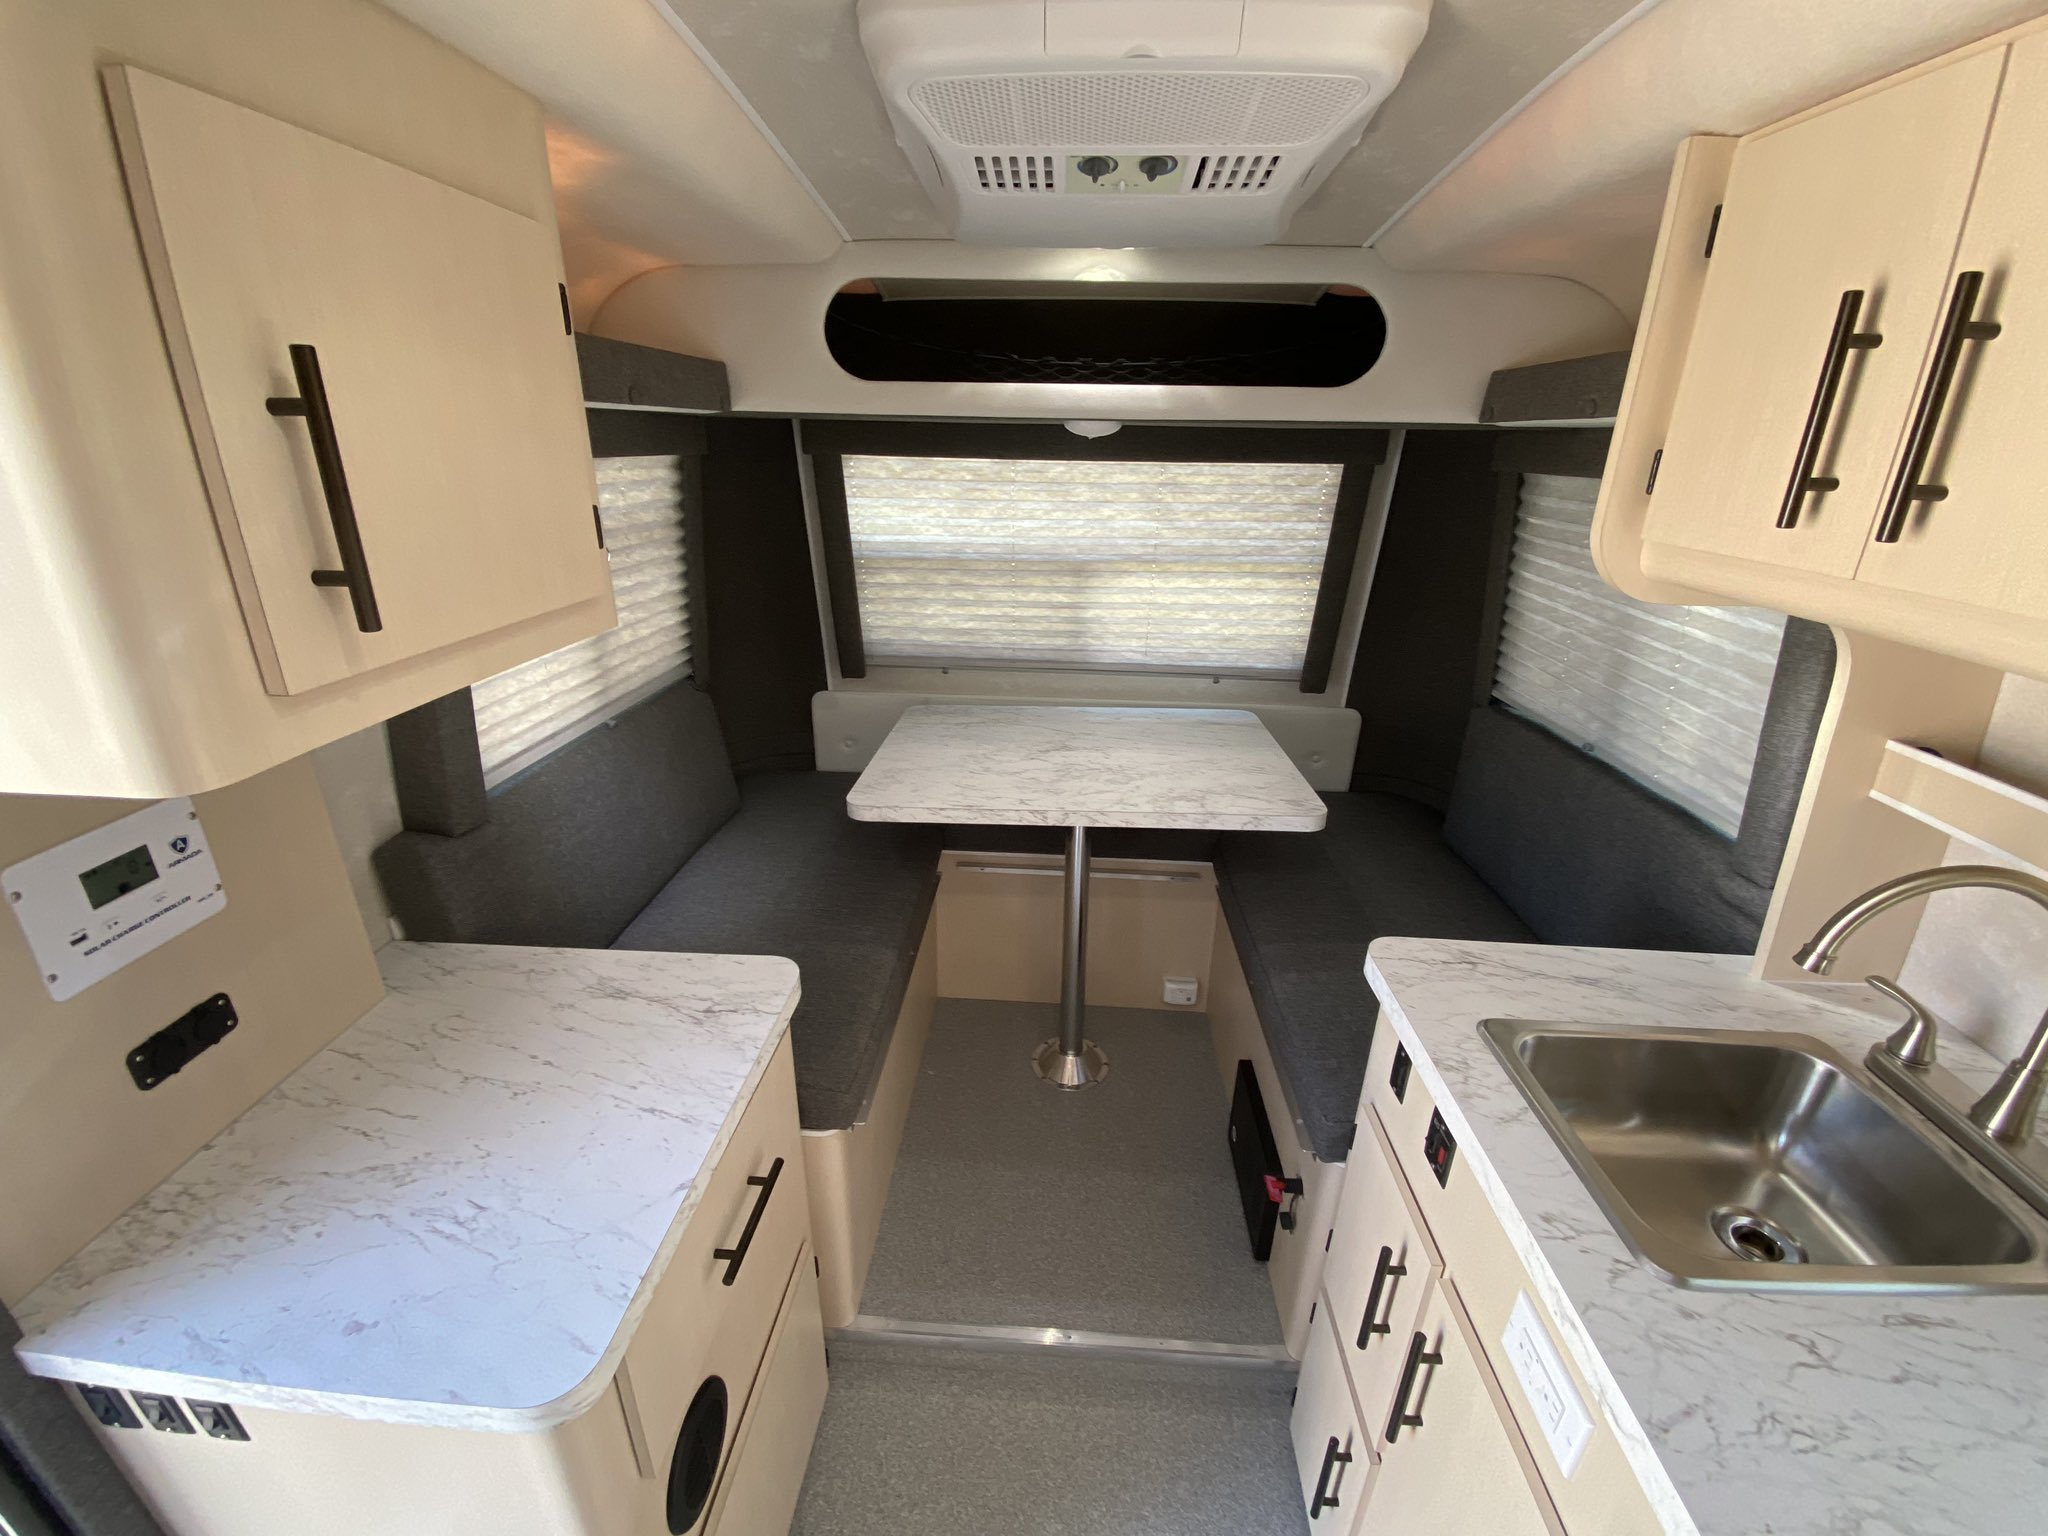 Armadillo Trailers On Twitter The New 14 0 Backpack By Armadillo Trailers This Is The New Triple Bunk Floor Plan Fun For The Whole Family Https T Co Eh65wdwhve